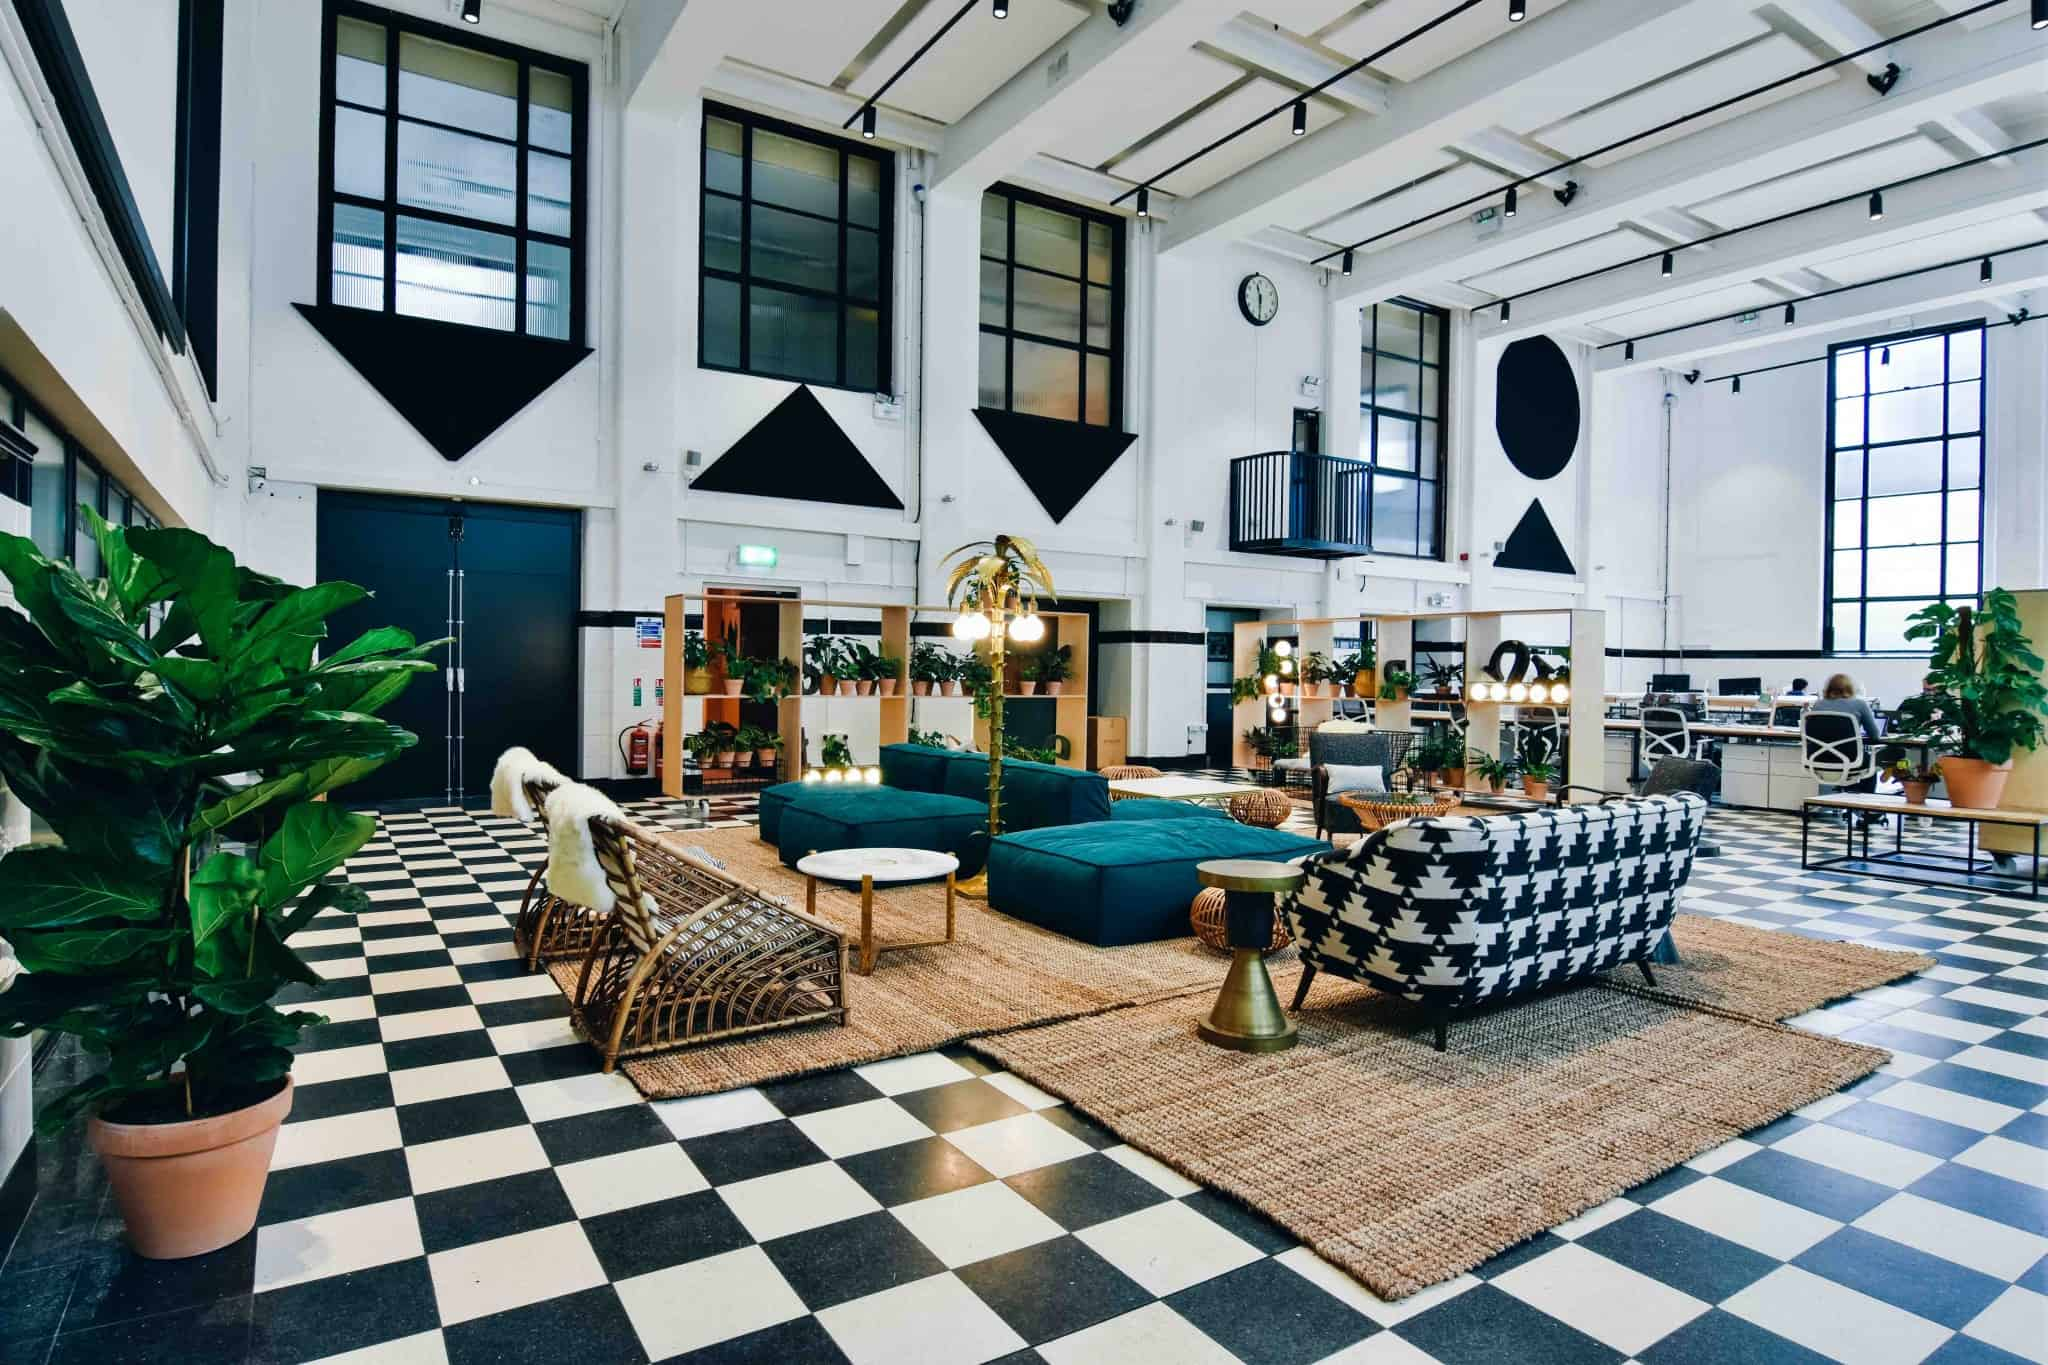 THIS Workspace coworking space in Bournemouth - The Foundry main room 4